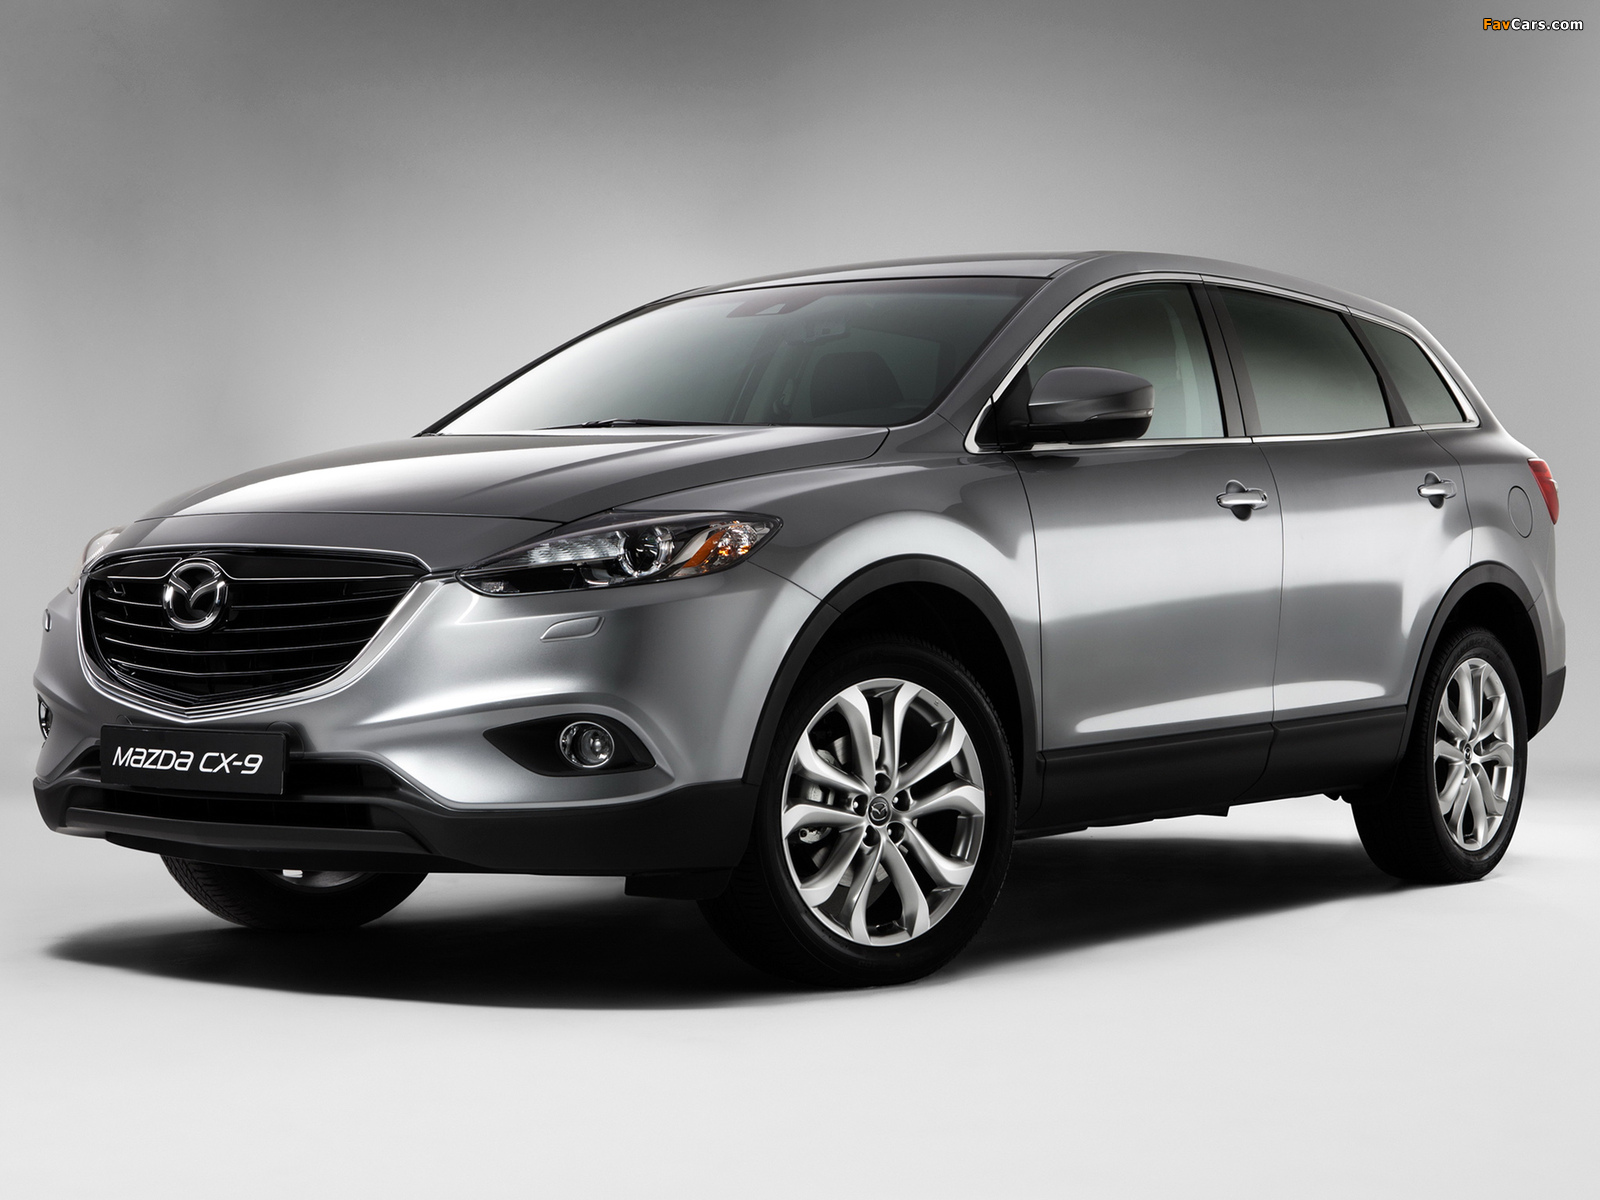 Mazda CX-9 2013 pictures (1600 x 1200)